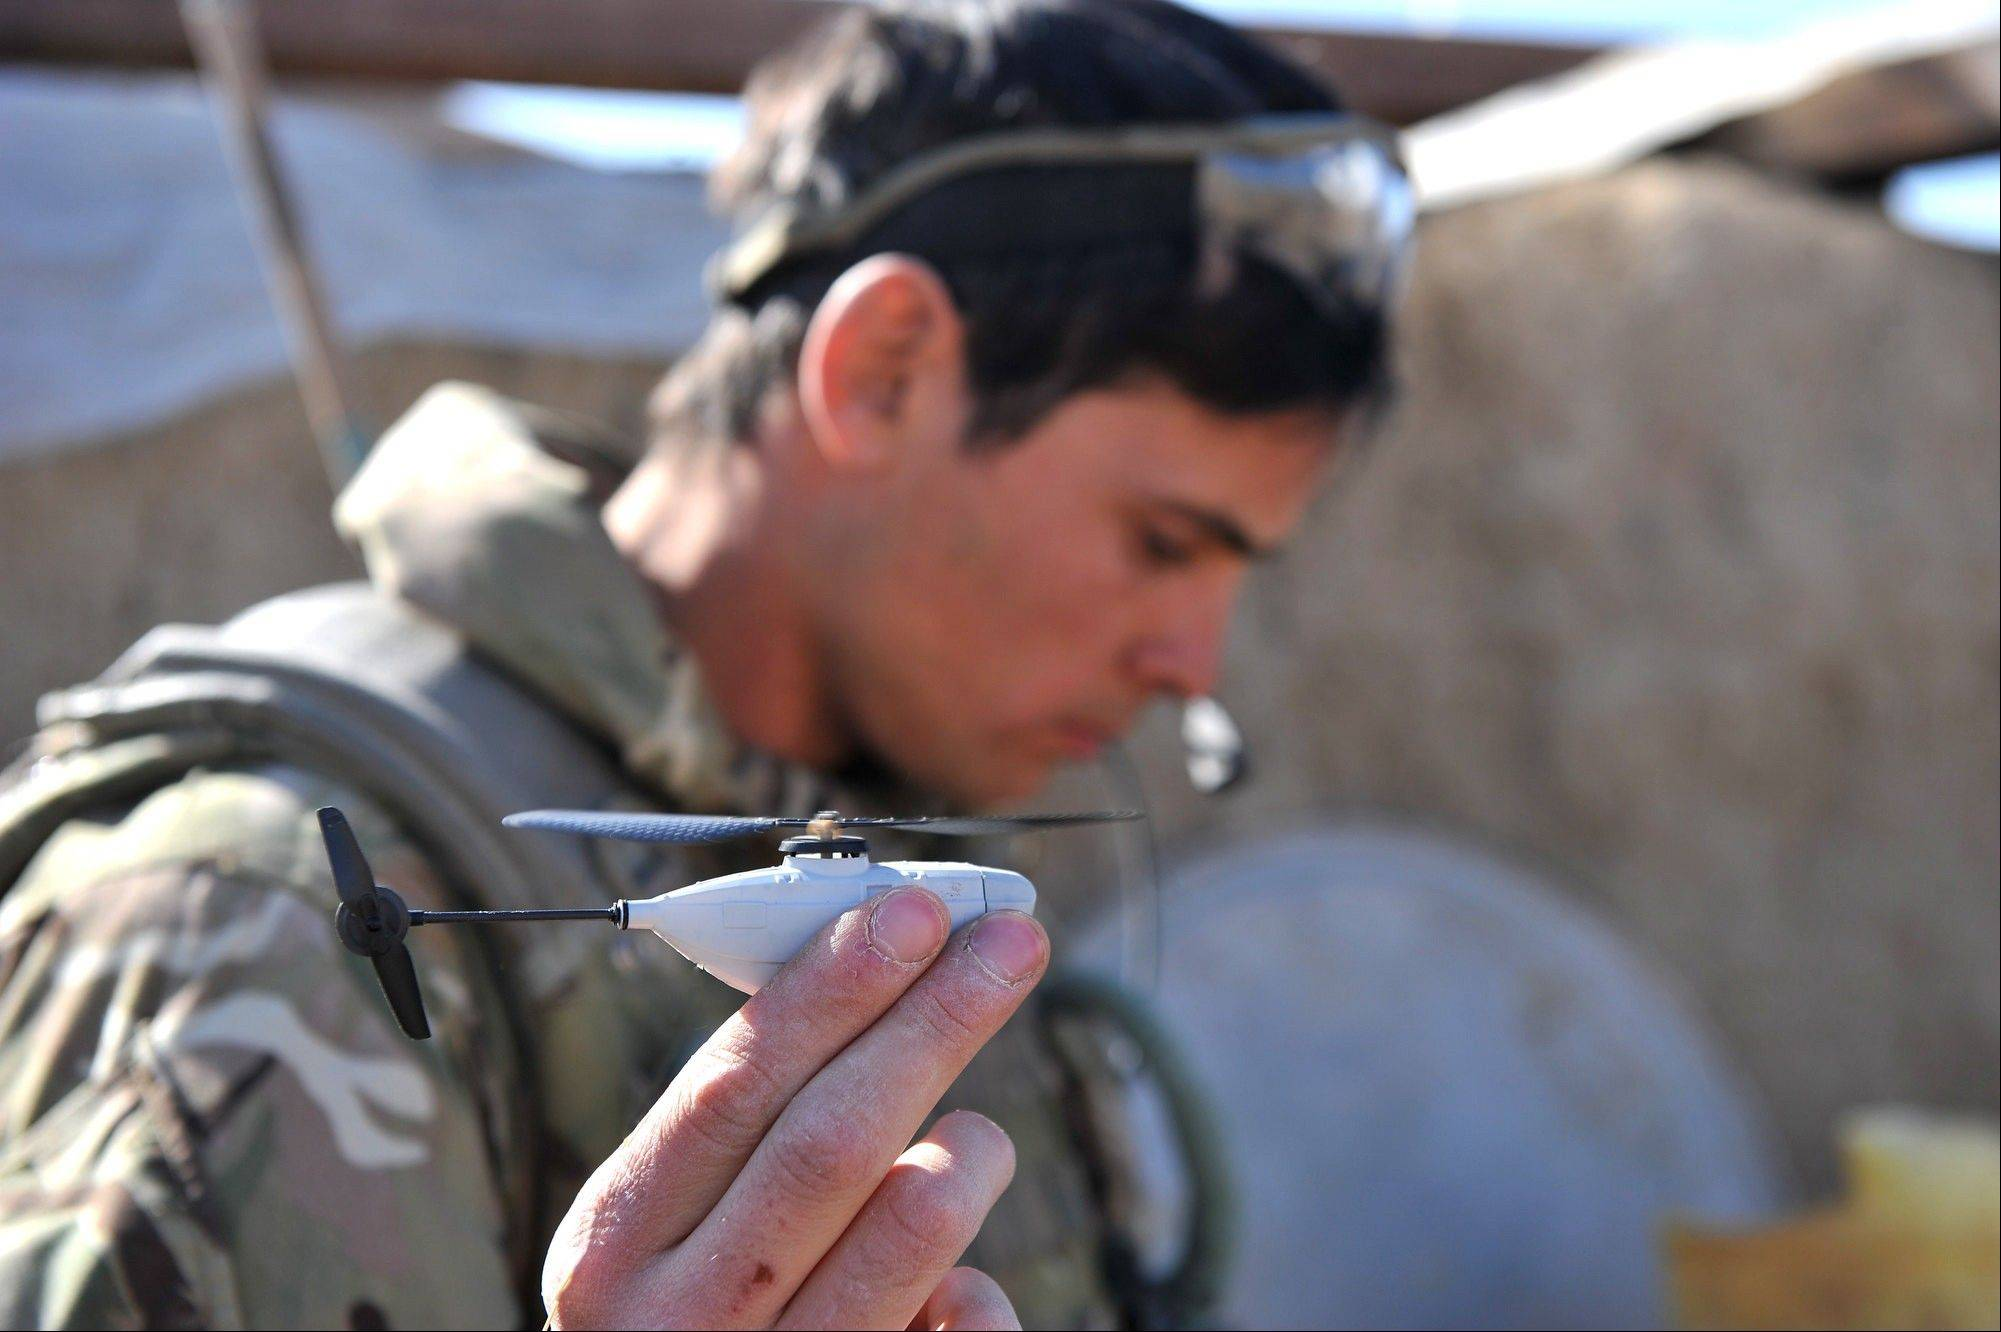 Sergeant Scott Weaver, of The Queens Royal Lancers launching a newly issued Black Hornet miniature surveillance helicopter during an operation in Afghanistan.